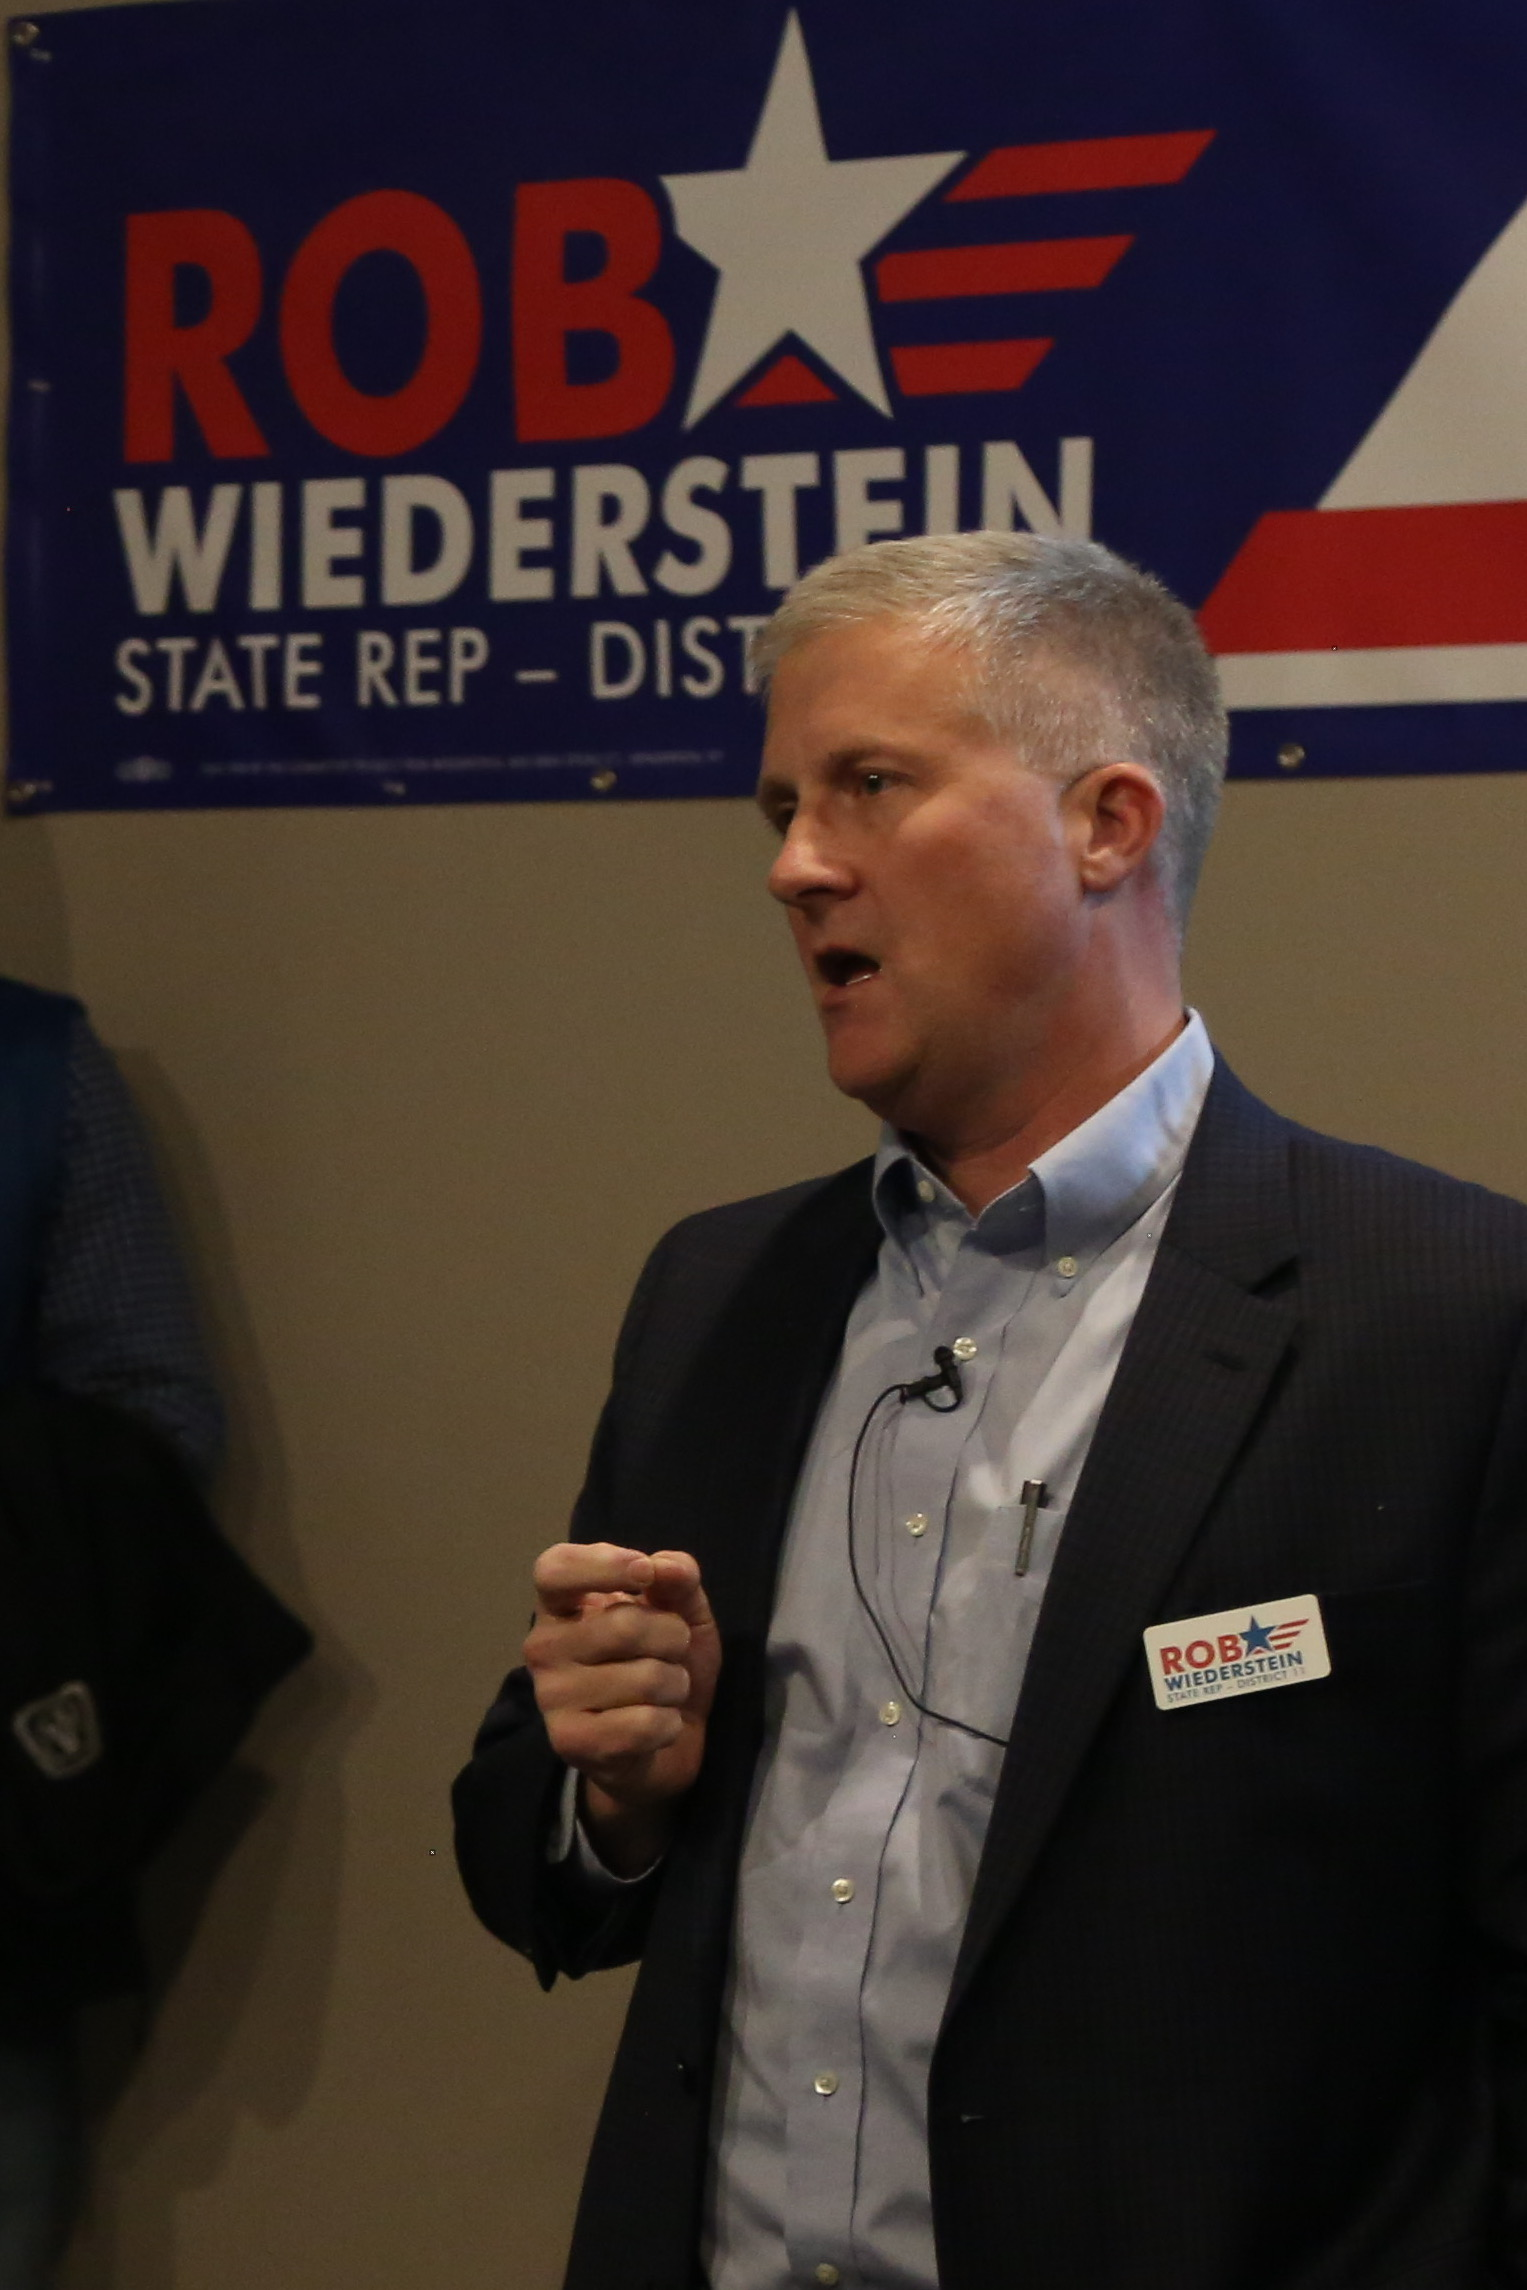 Rob addressing supporters at the campaign kickoff on January 18, 2018, in Henderson, Kentucky.